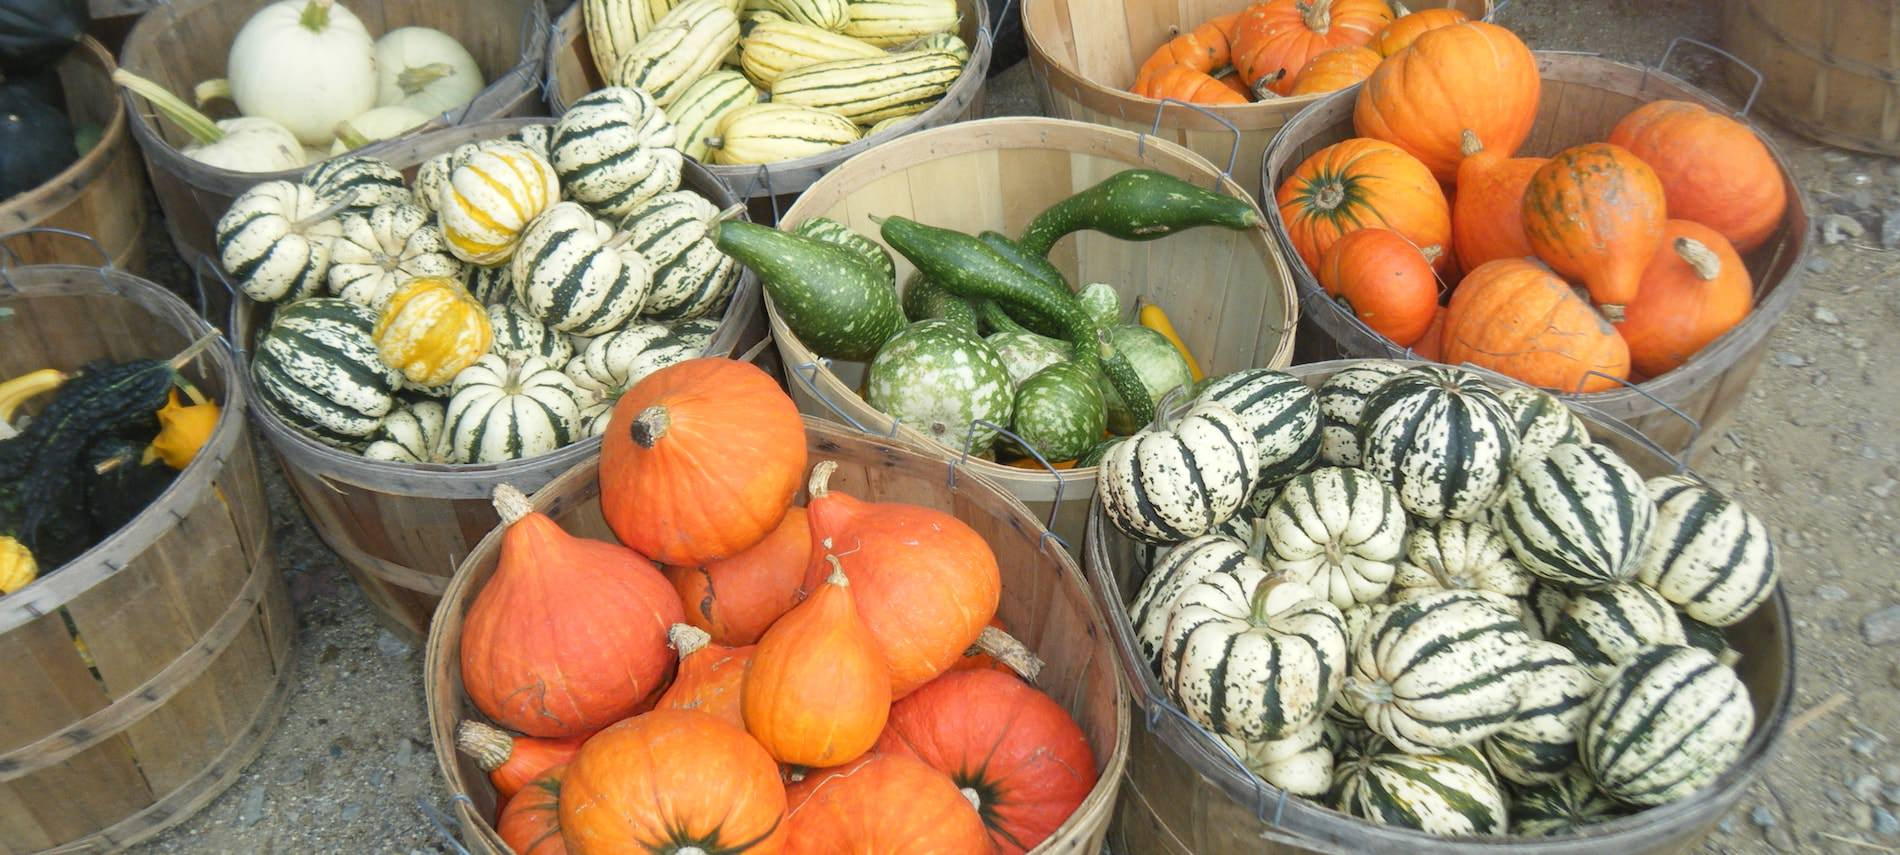 Metal pails full of colorful pumpkins and gourds,